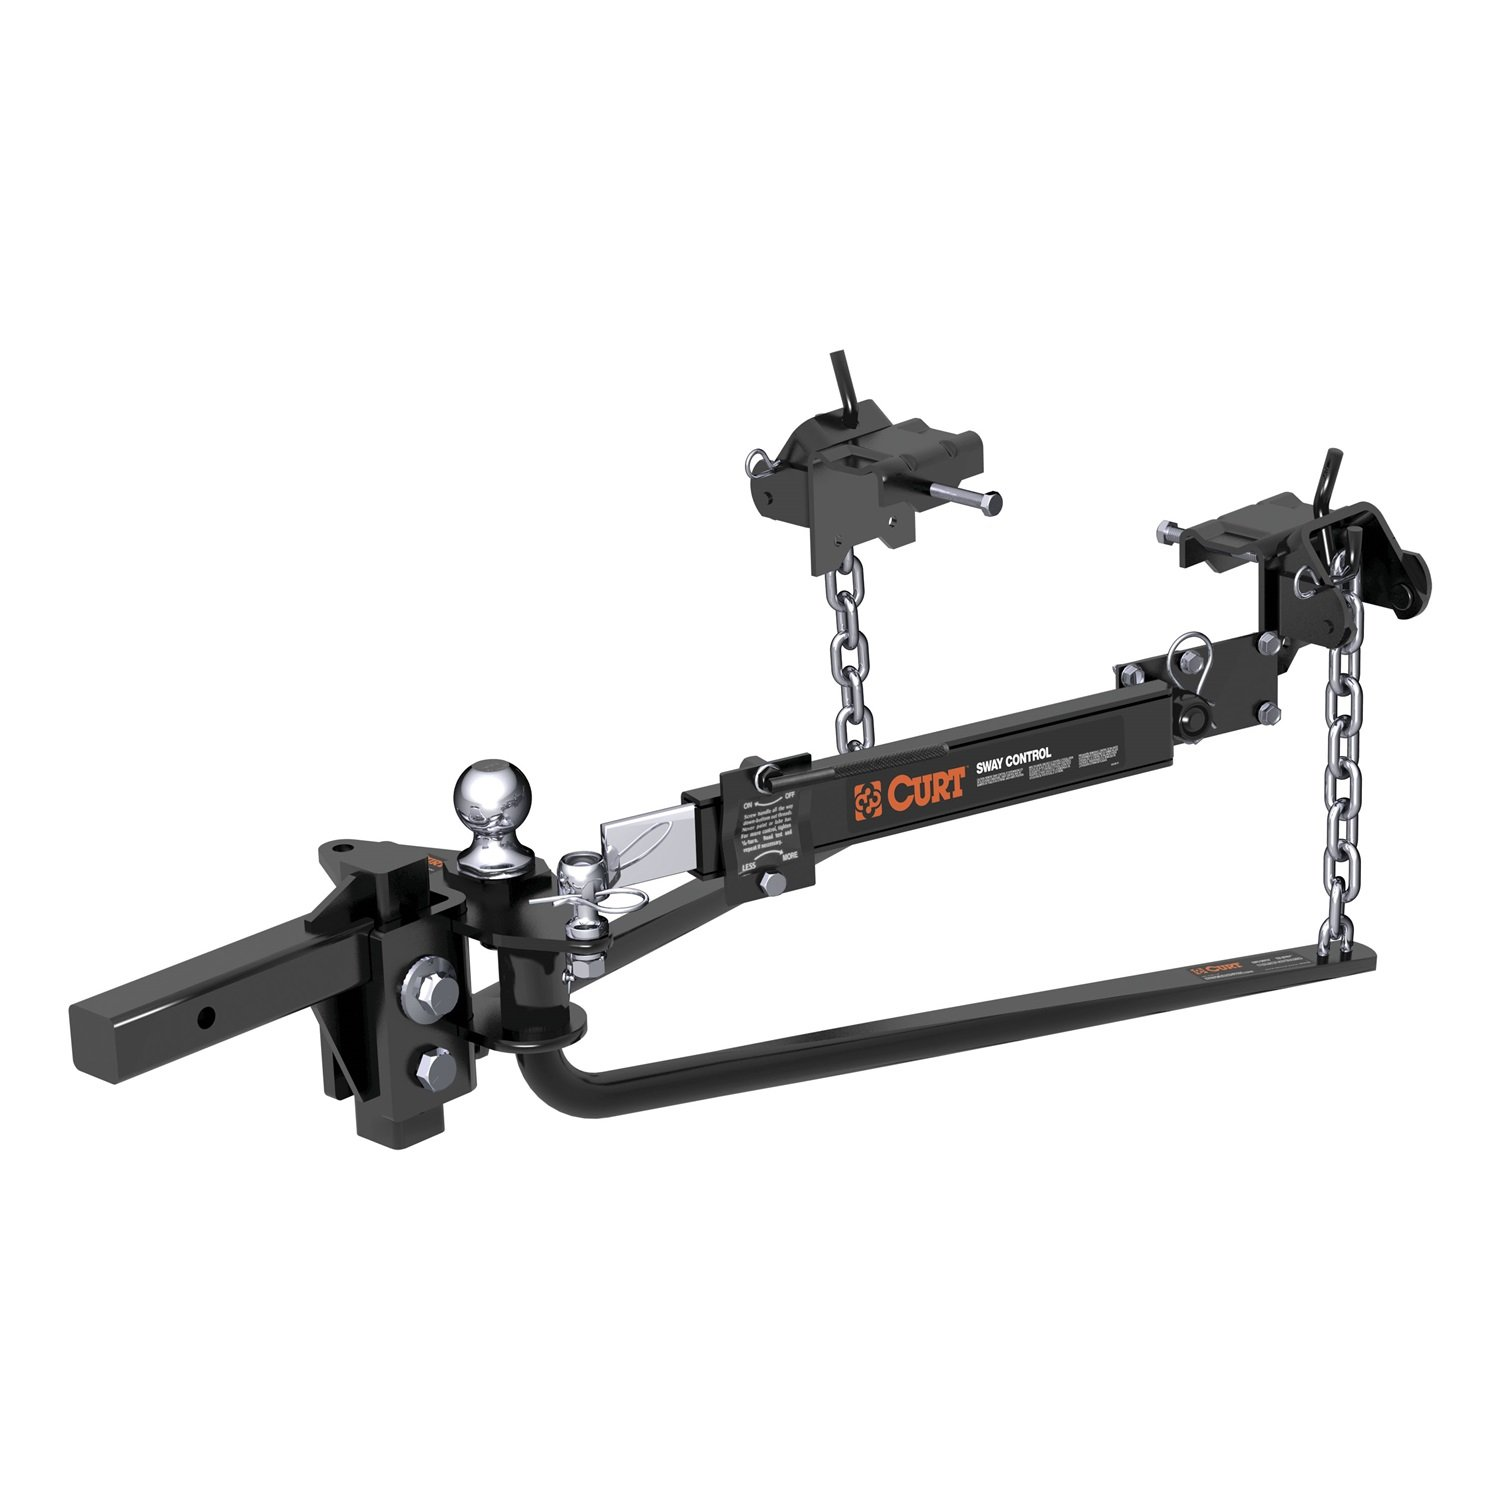 14,000 lbs. GTW, 2 Shank, 2-5//16 Ball 2 Shank 2-5//16 Ball Curt 17063 MV Black Round Bar Weight Distribution Hitch with Sway Control Kit Curt Manufacturing